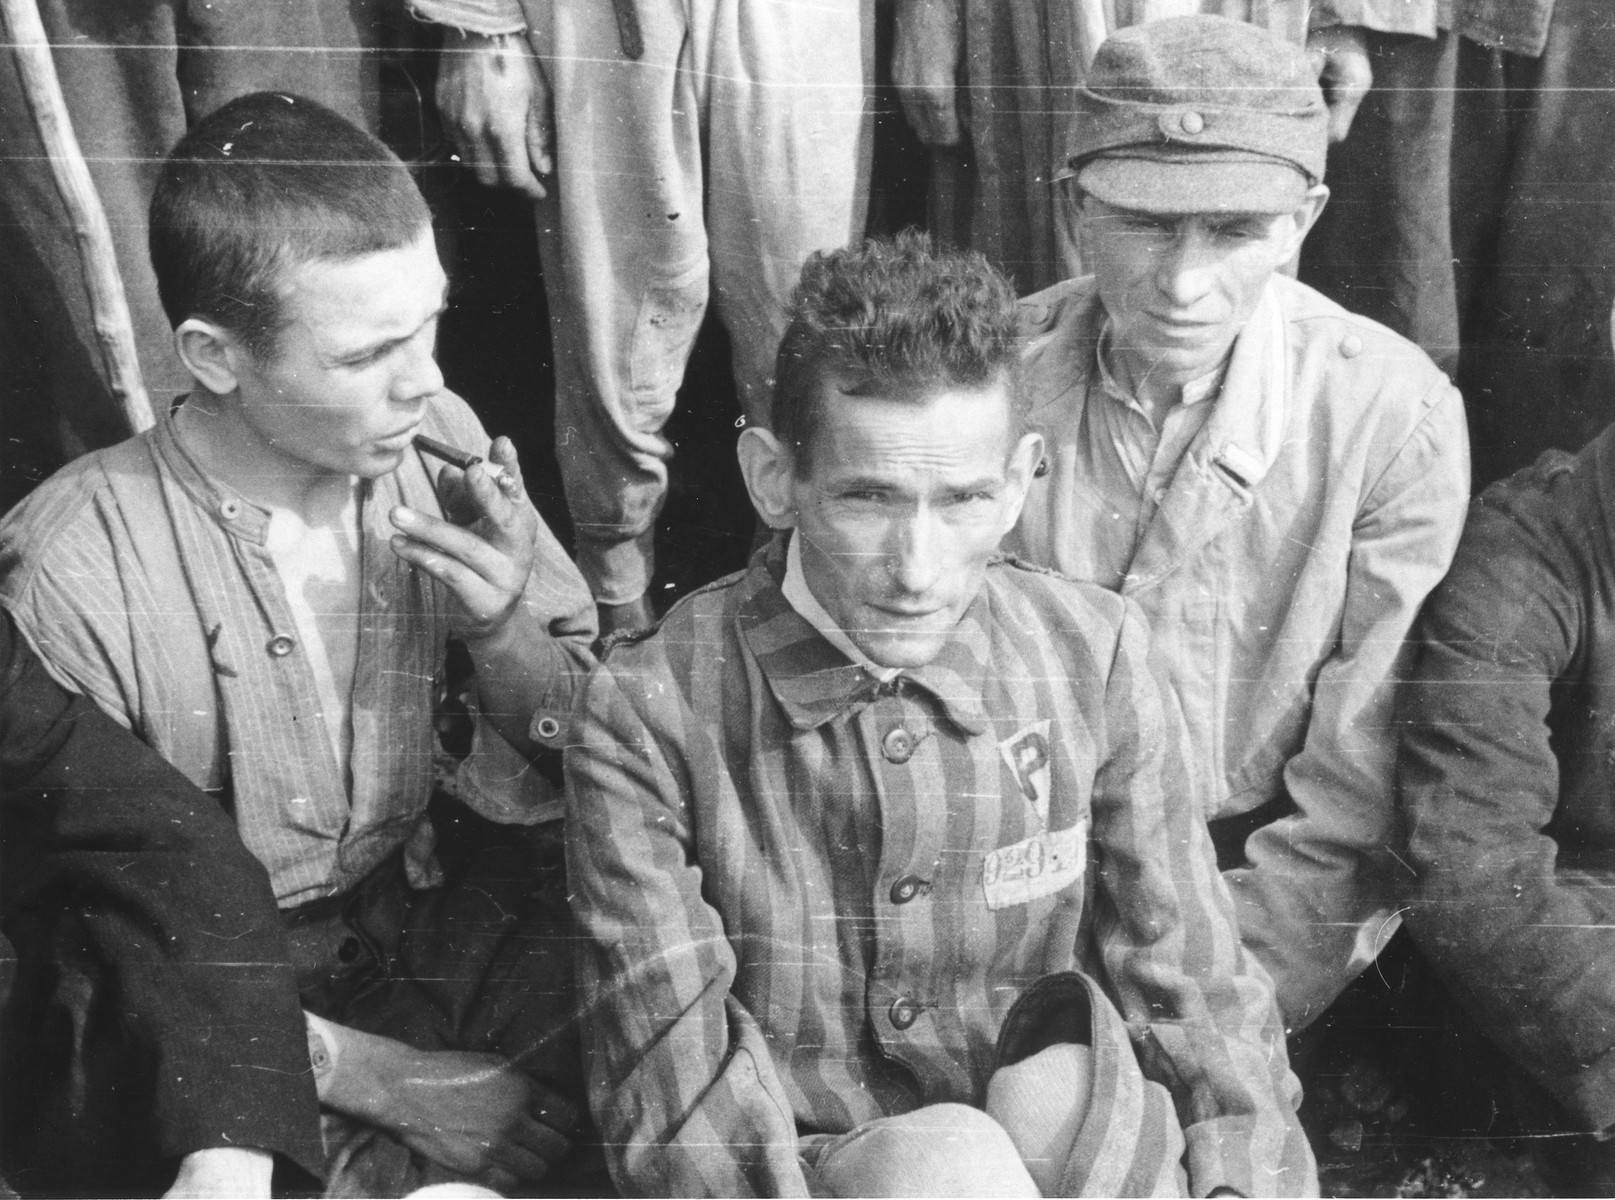 A close-up of three survivors at a gathering in the Langenstein-Zwieberge concentration camp, a sub-camp of Buchenwald, soon after liberation.  The man in the foreground wears a triangular badge with the letter P probably signifying that he was classified as a Polish political prisoner during his incarceration in the camp.